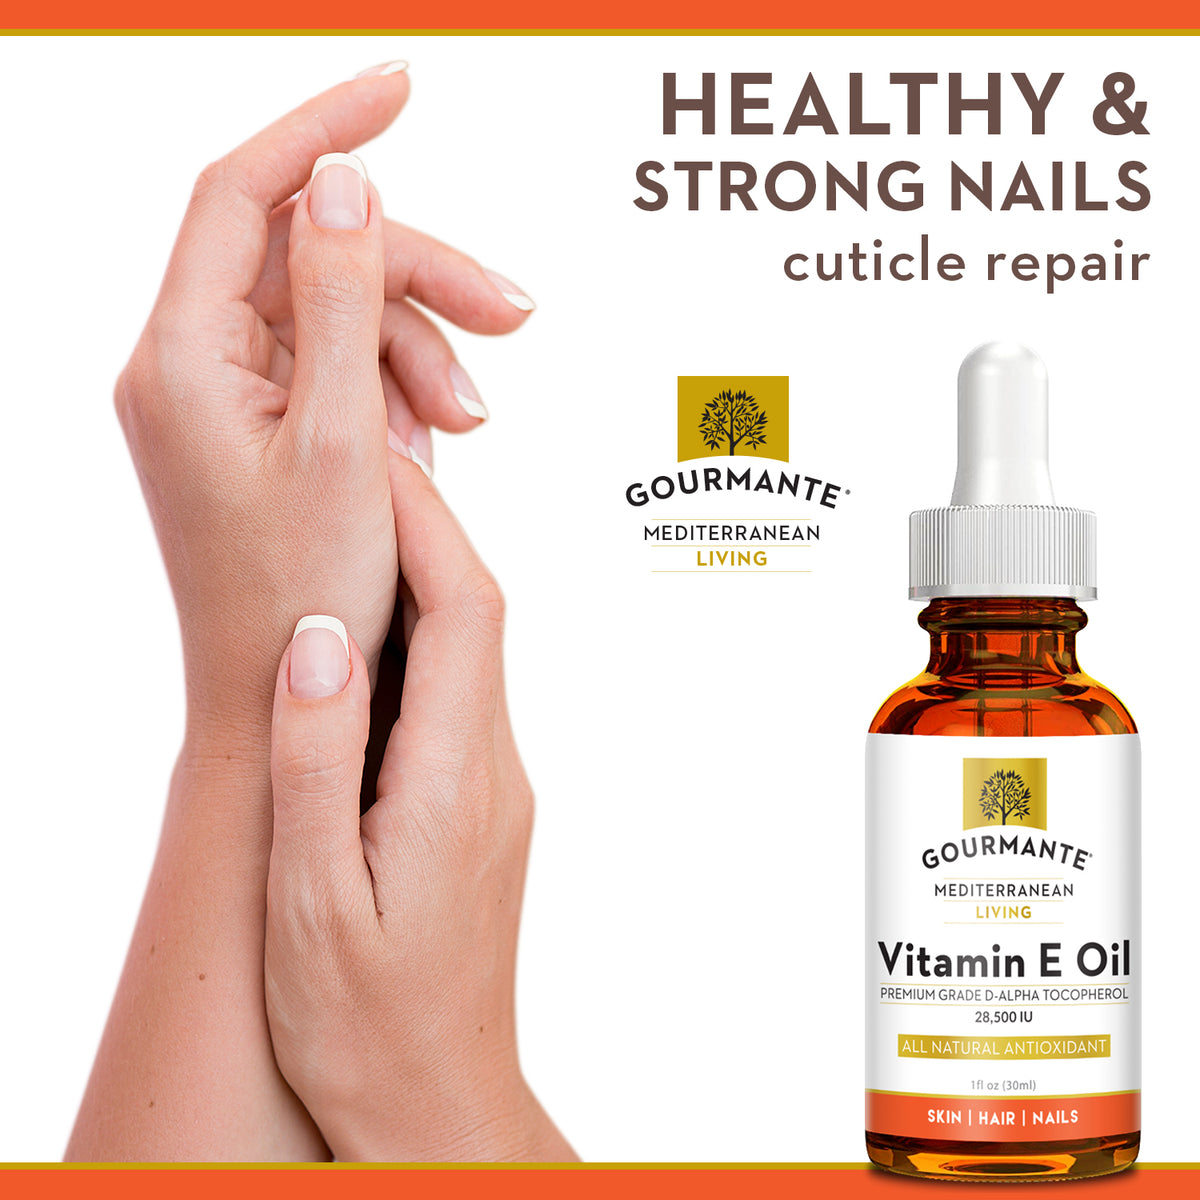 Gourmante vitamin e oil for healthy & strong nails